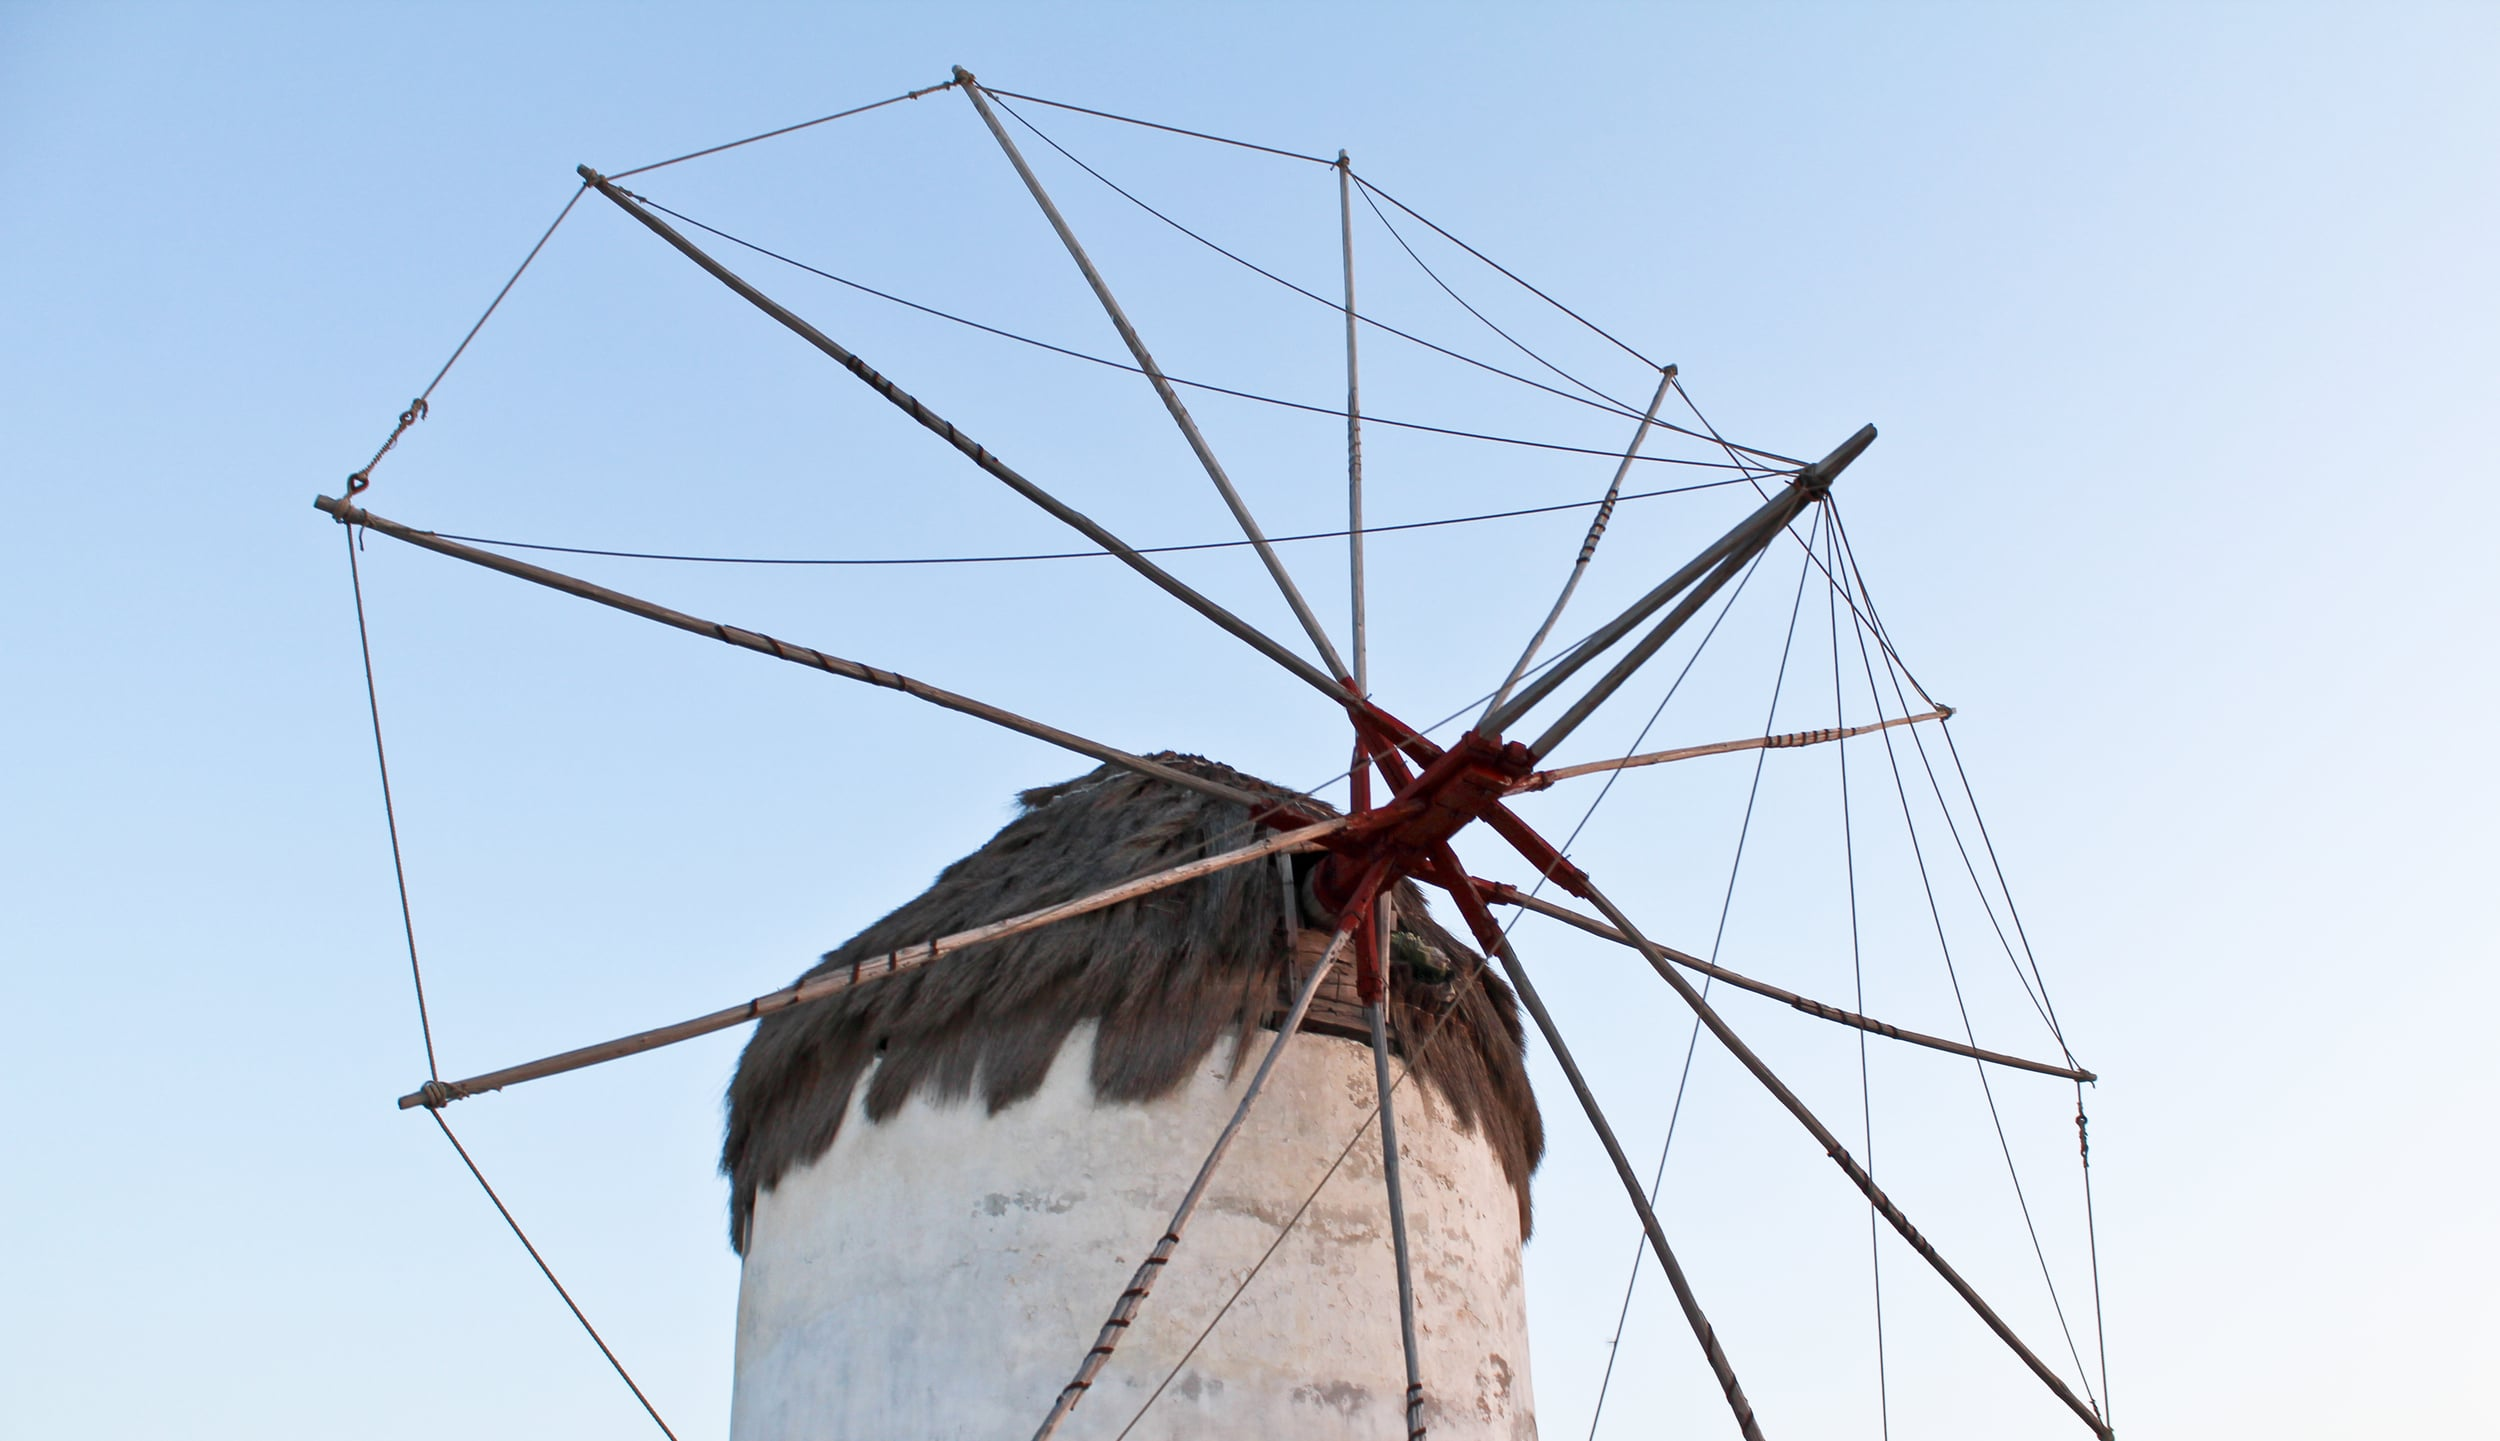 trisa-taro-mykonos-windmill-greece.jpg